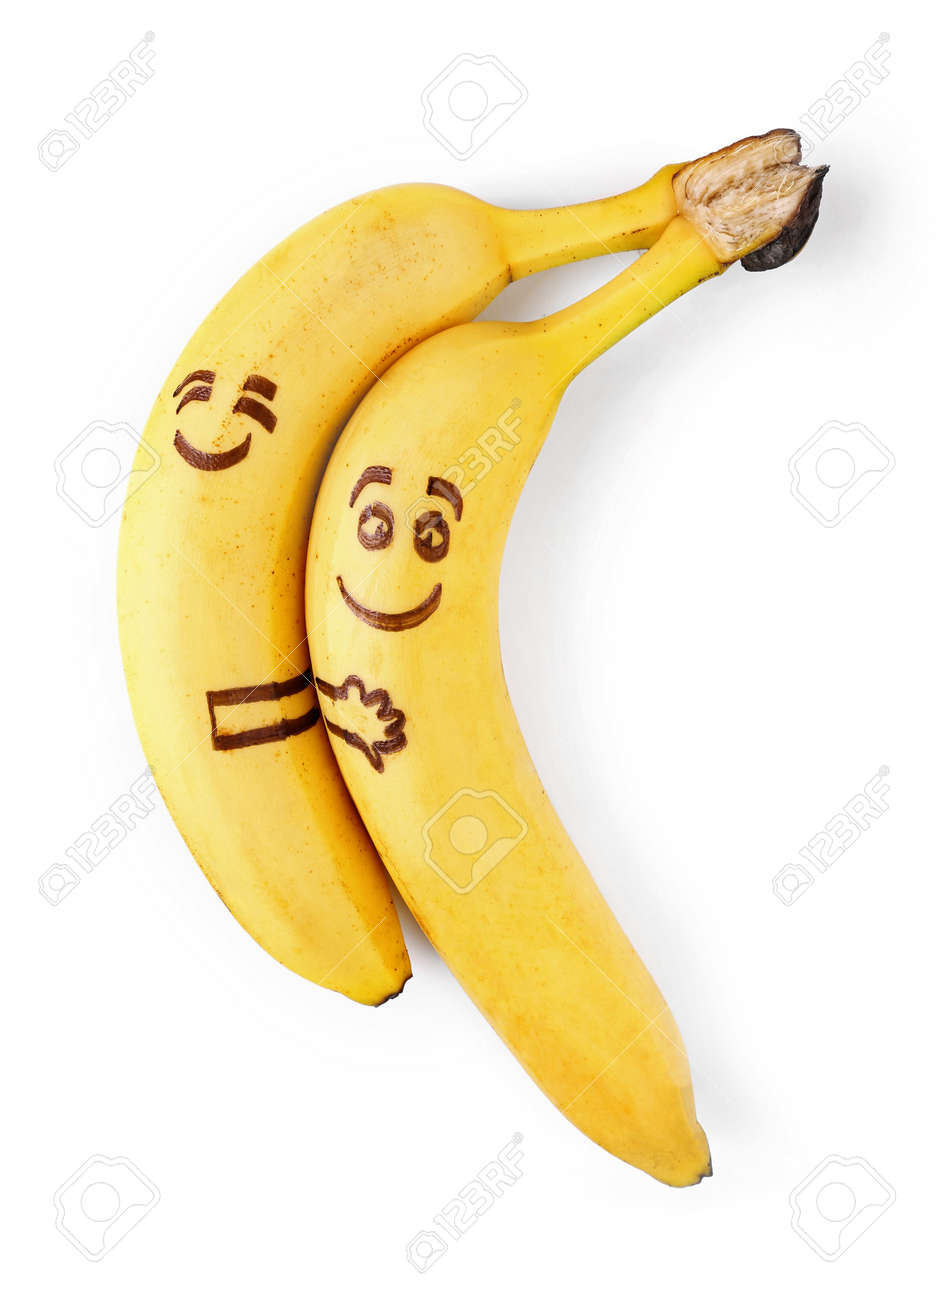 Bananas with smiley faces couple in love concept stock photo bananas with smiley faces couple in love concept stock photo 44326064 biocorpaavc